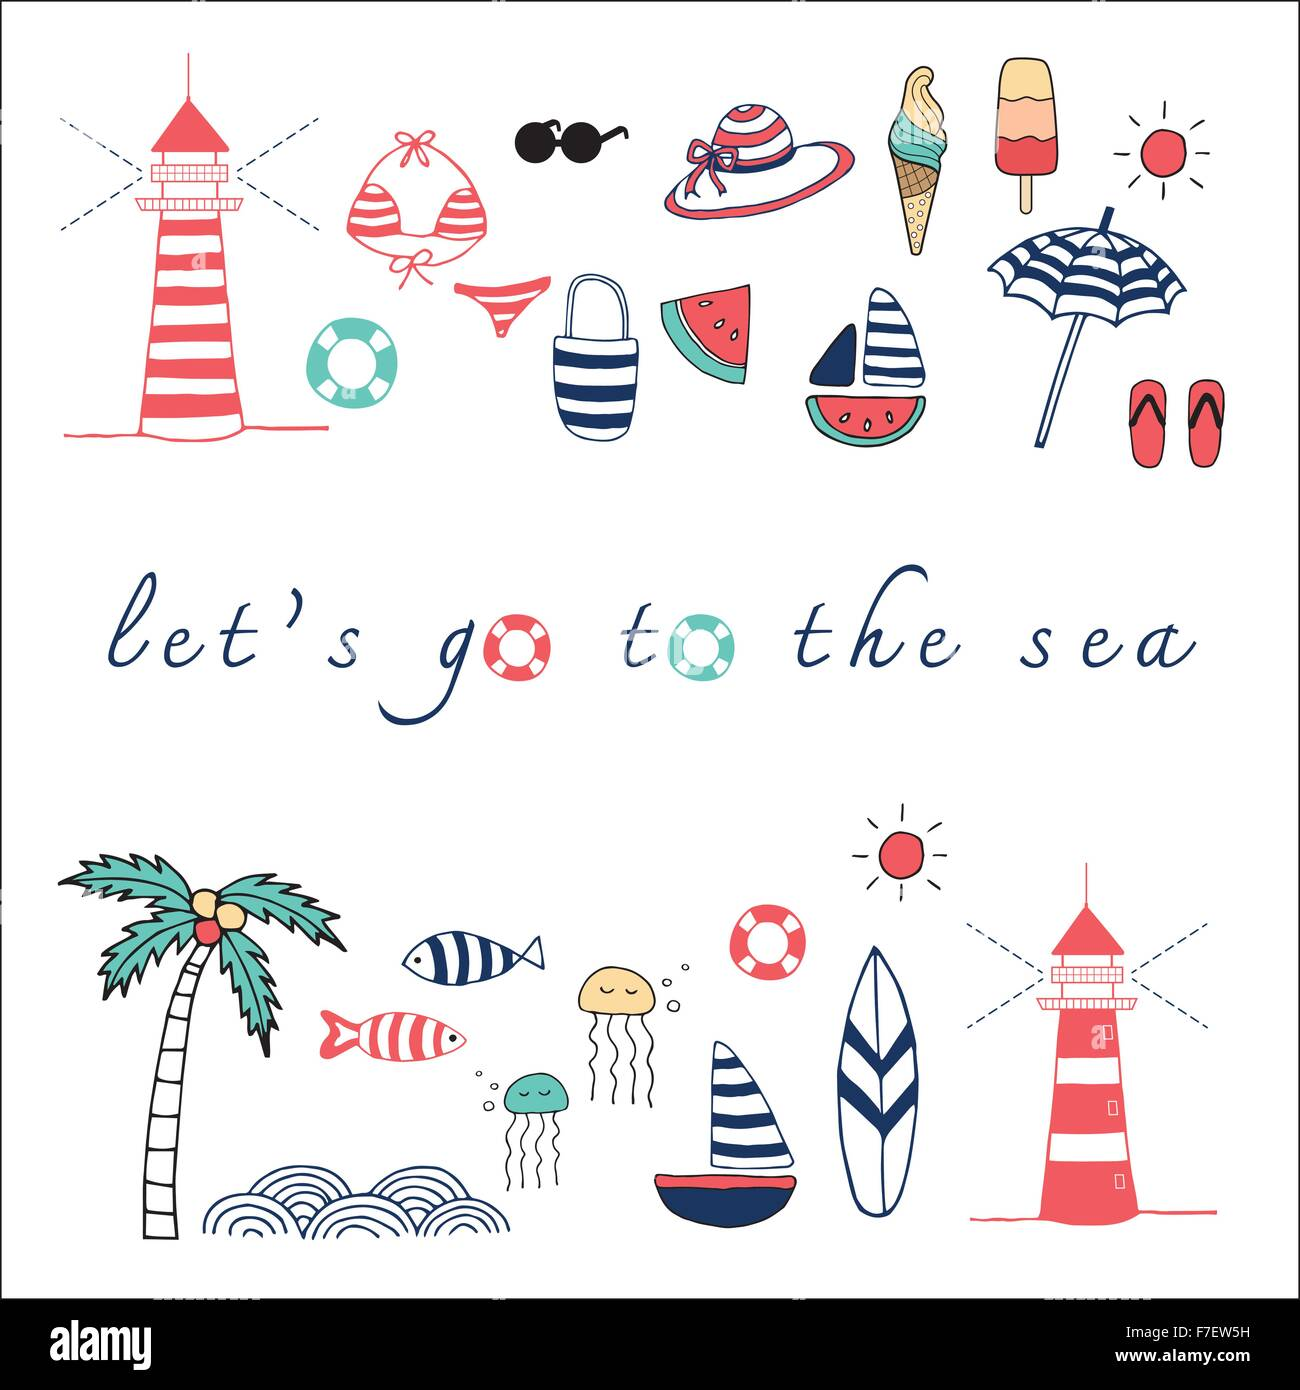 Let's go the the sea doodle illustration  objects collection - Stock Image